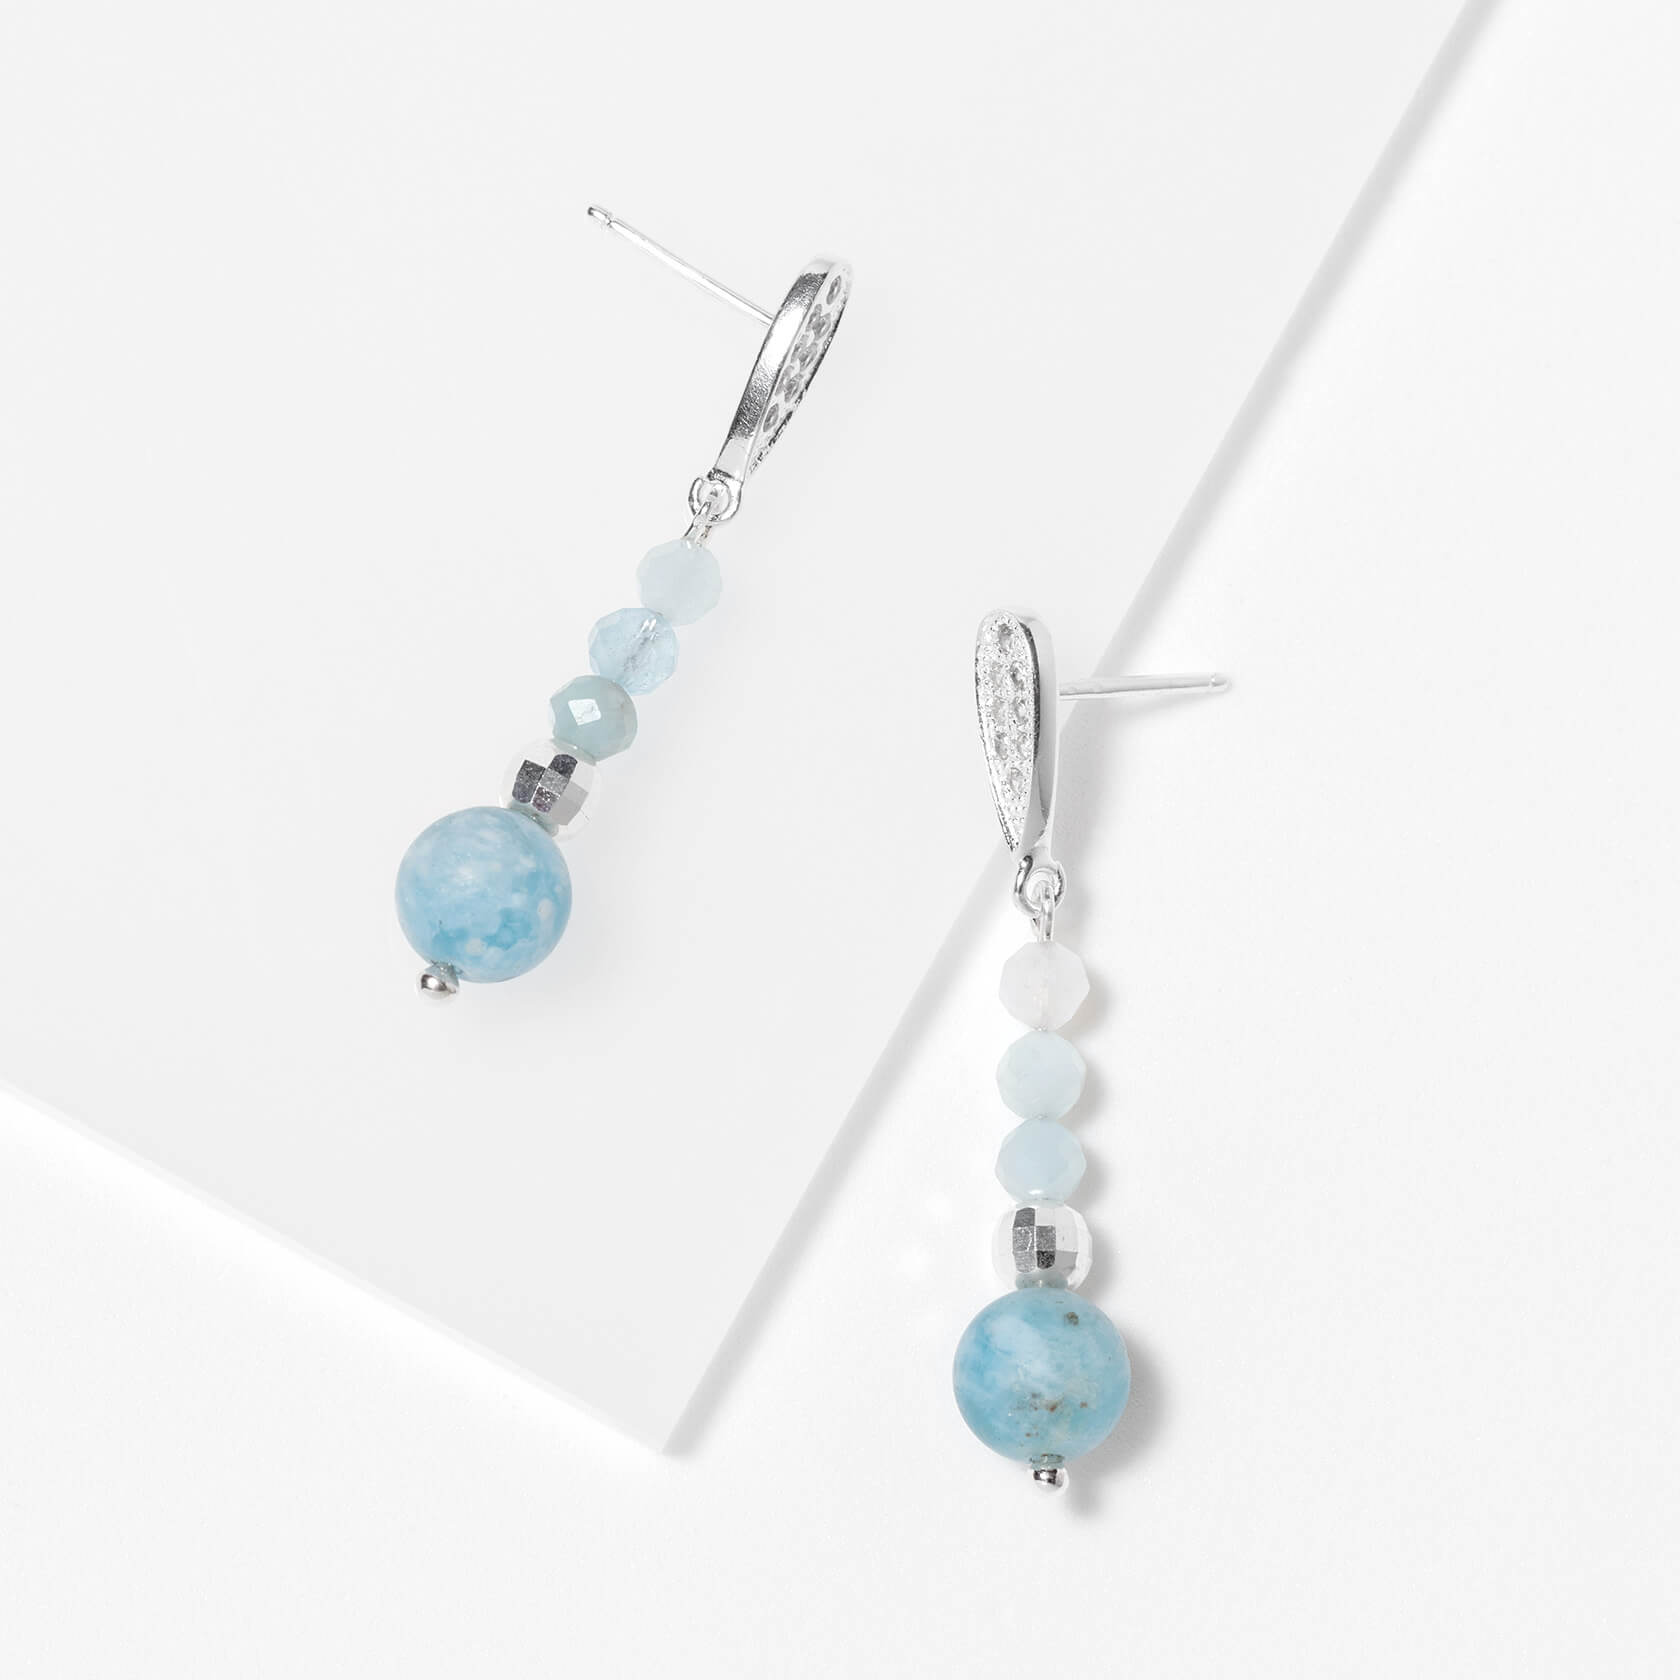 Aquamarine earrings and white zircons